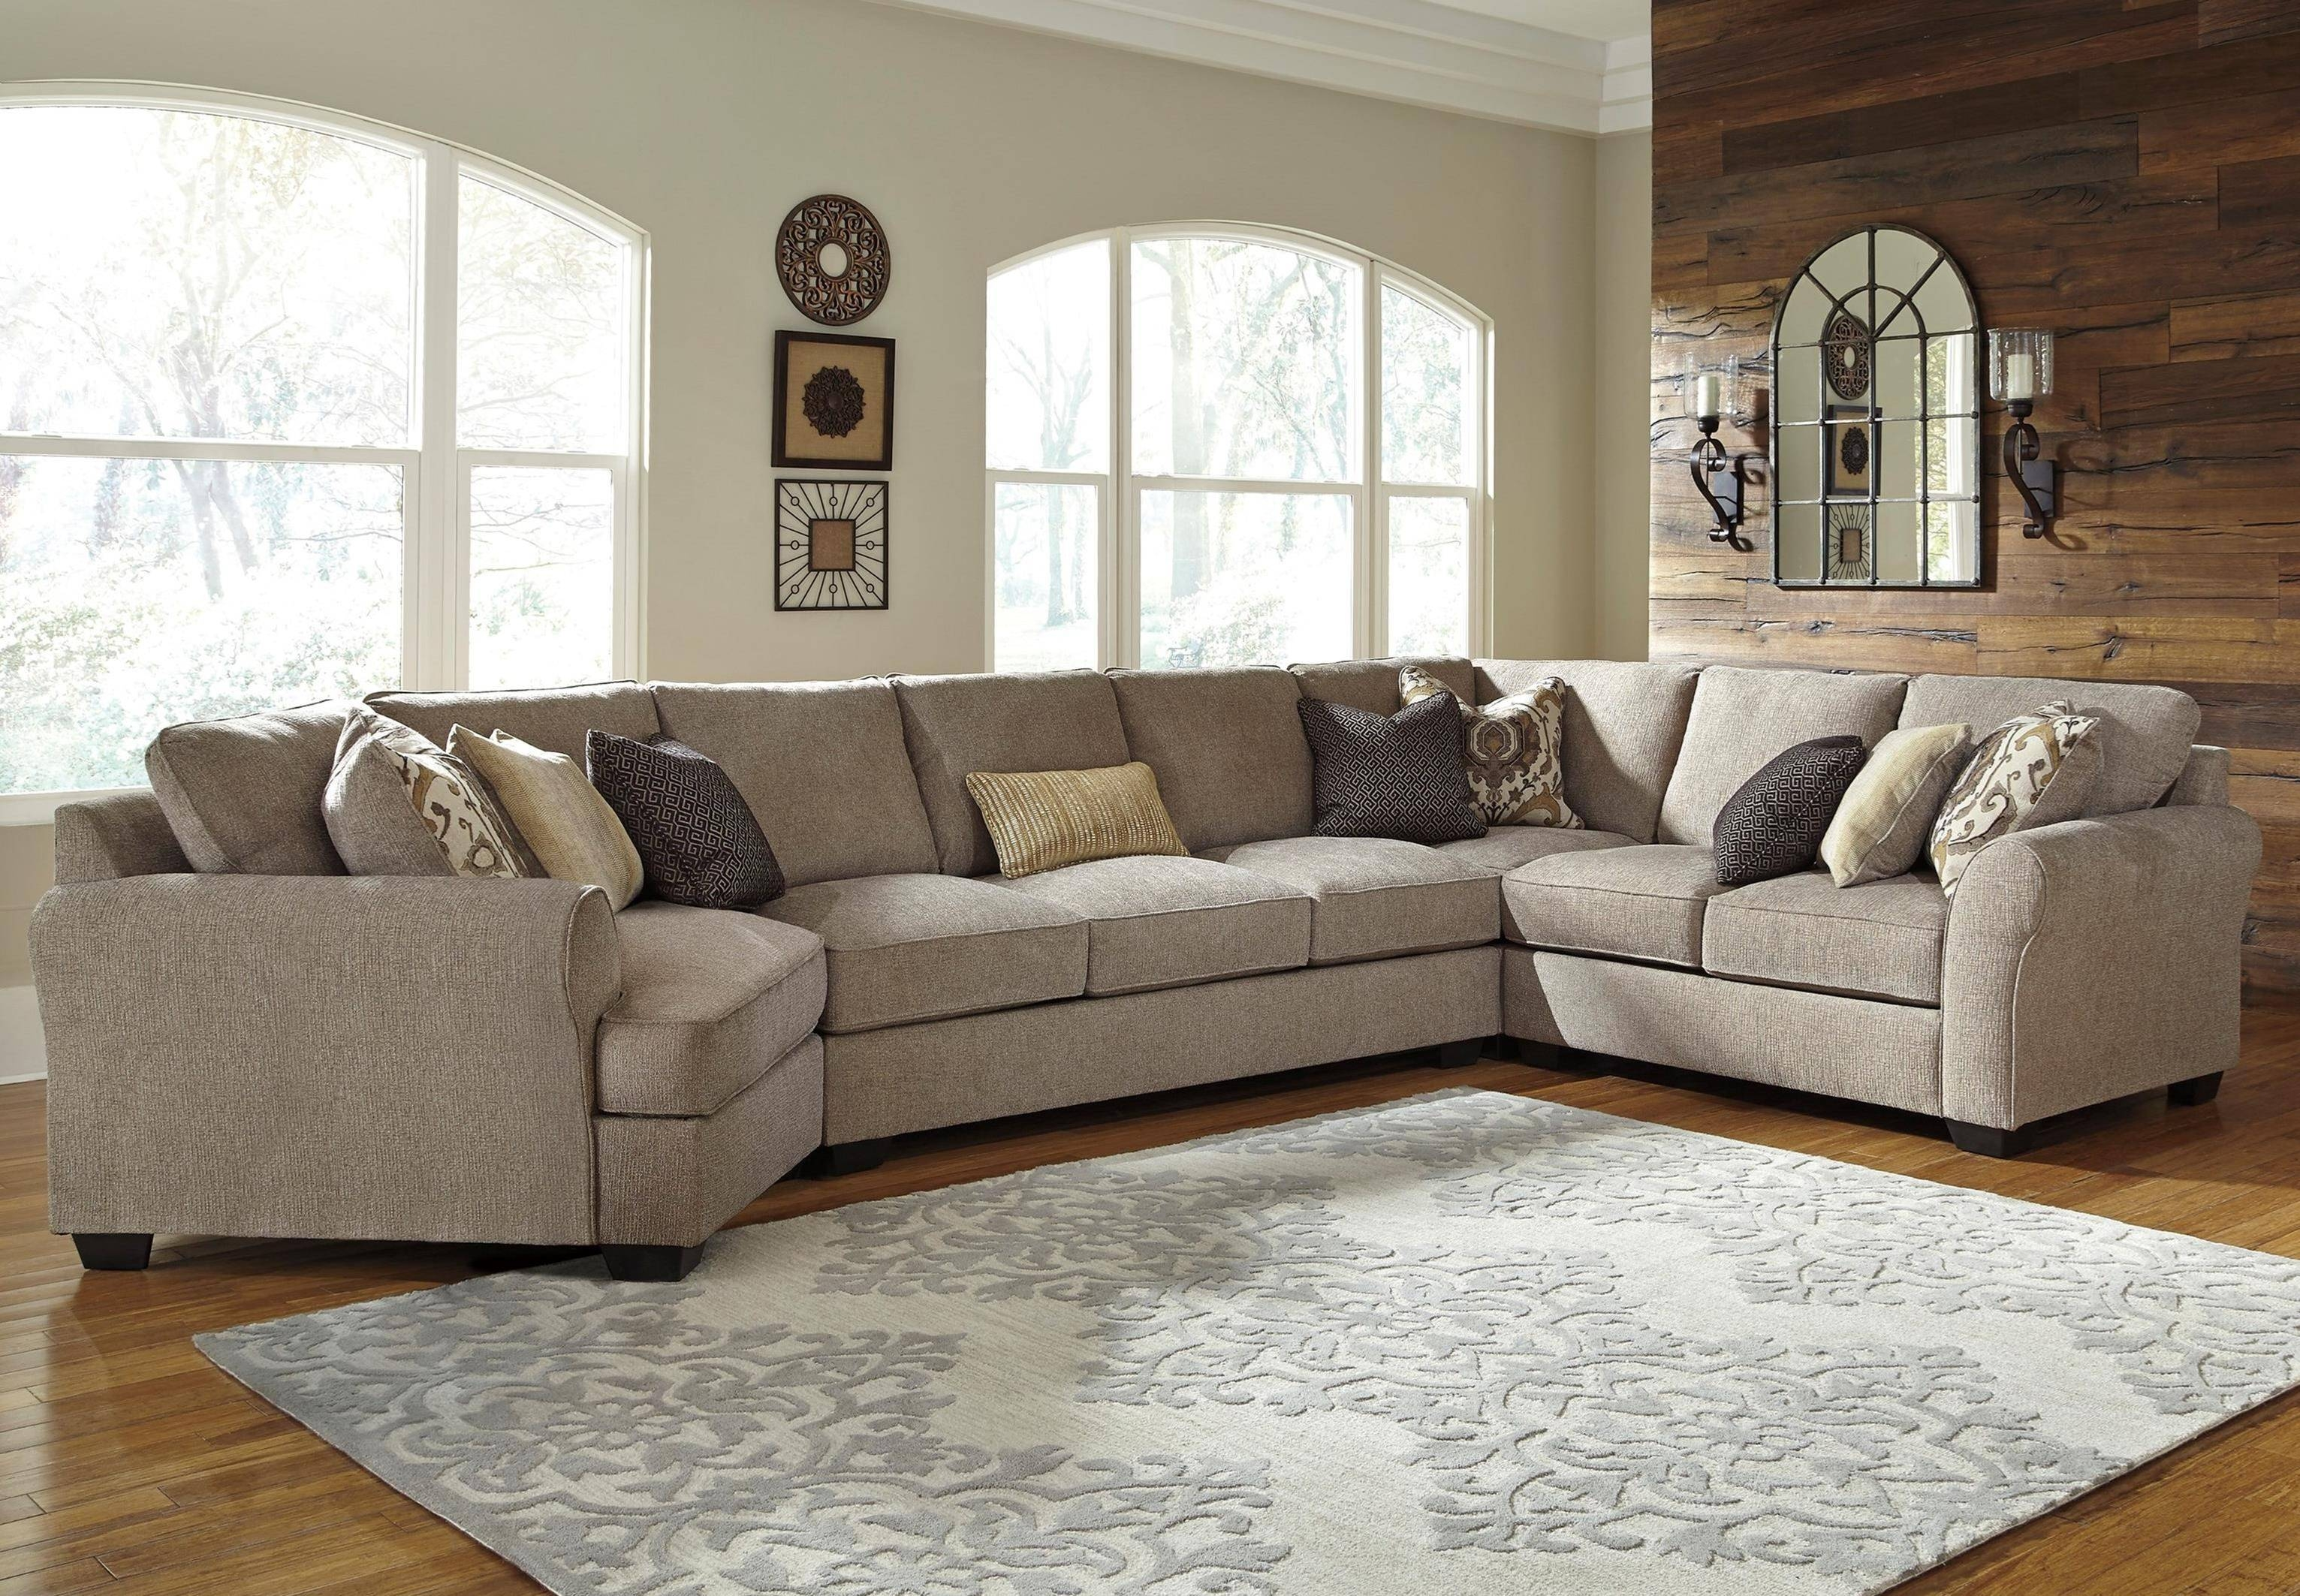 Benchcraft Pantomine 4-Piece Sectional With Left Cuddler & Armless regarding Armless Sectional Sofa (Image 4 of 30)